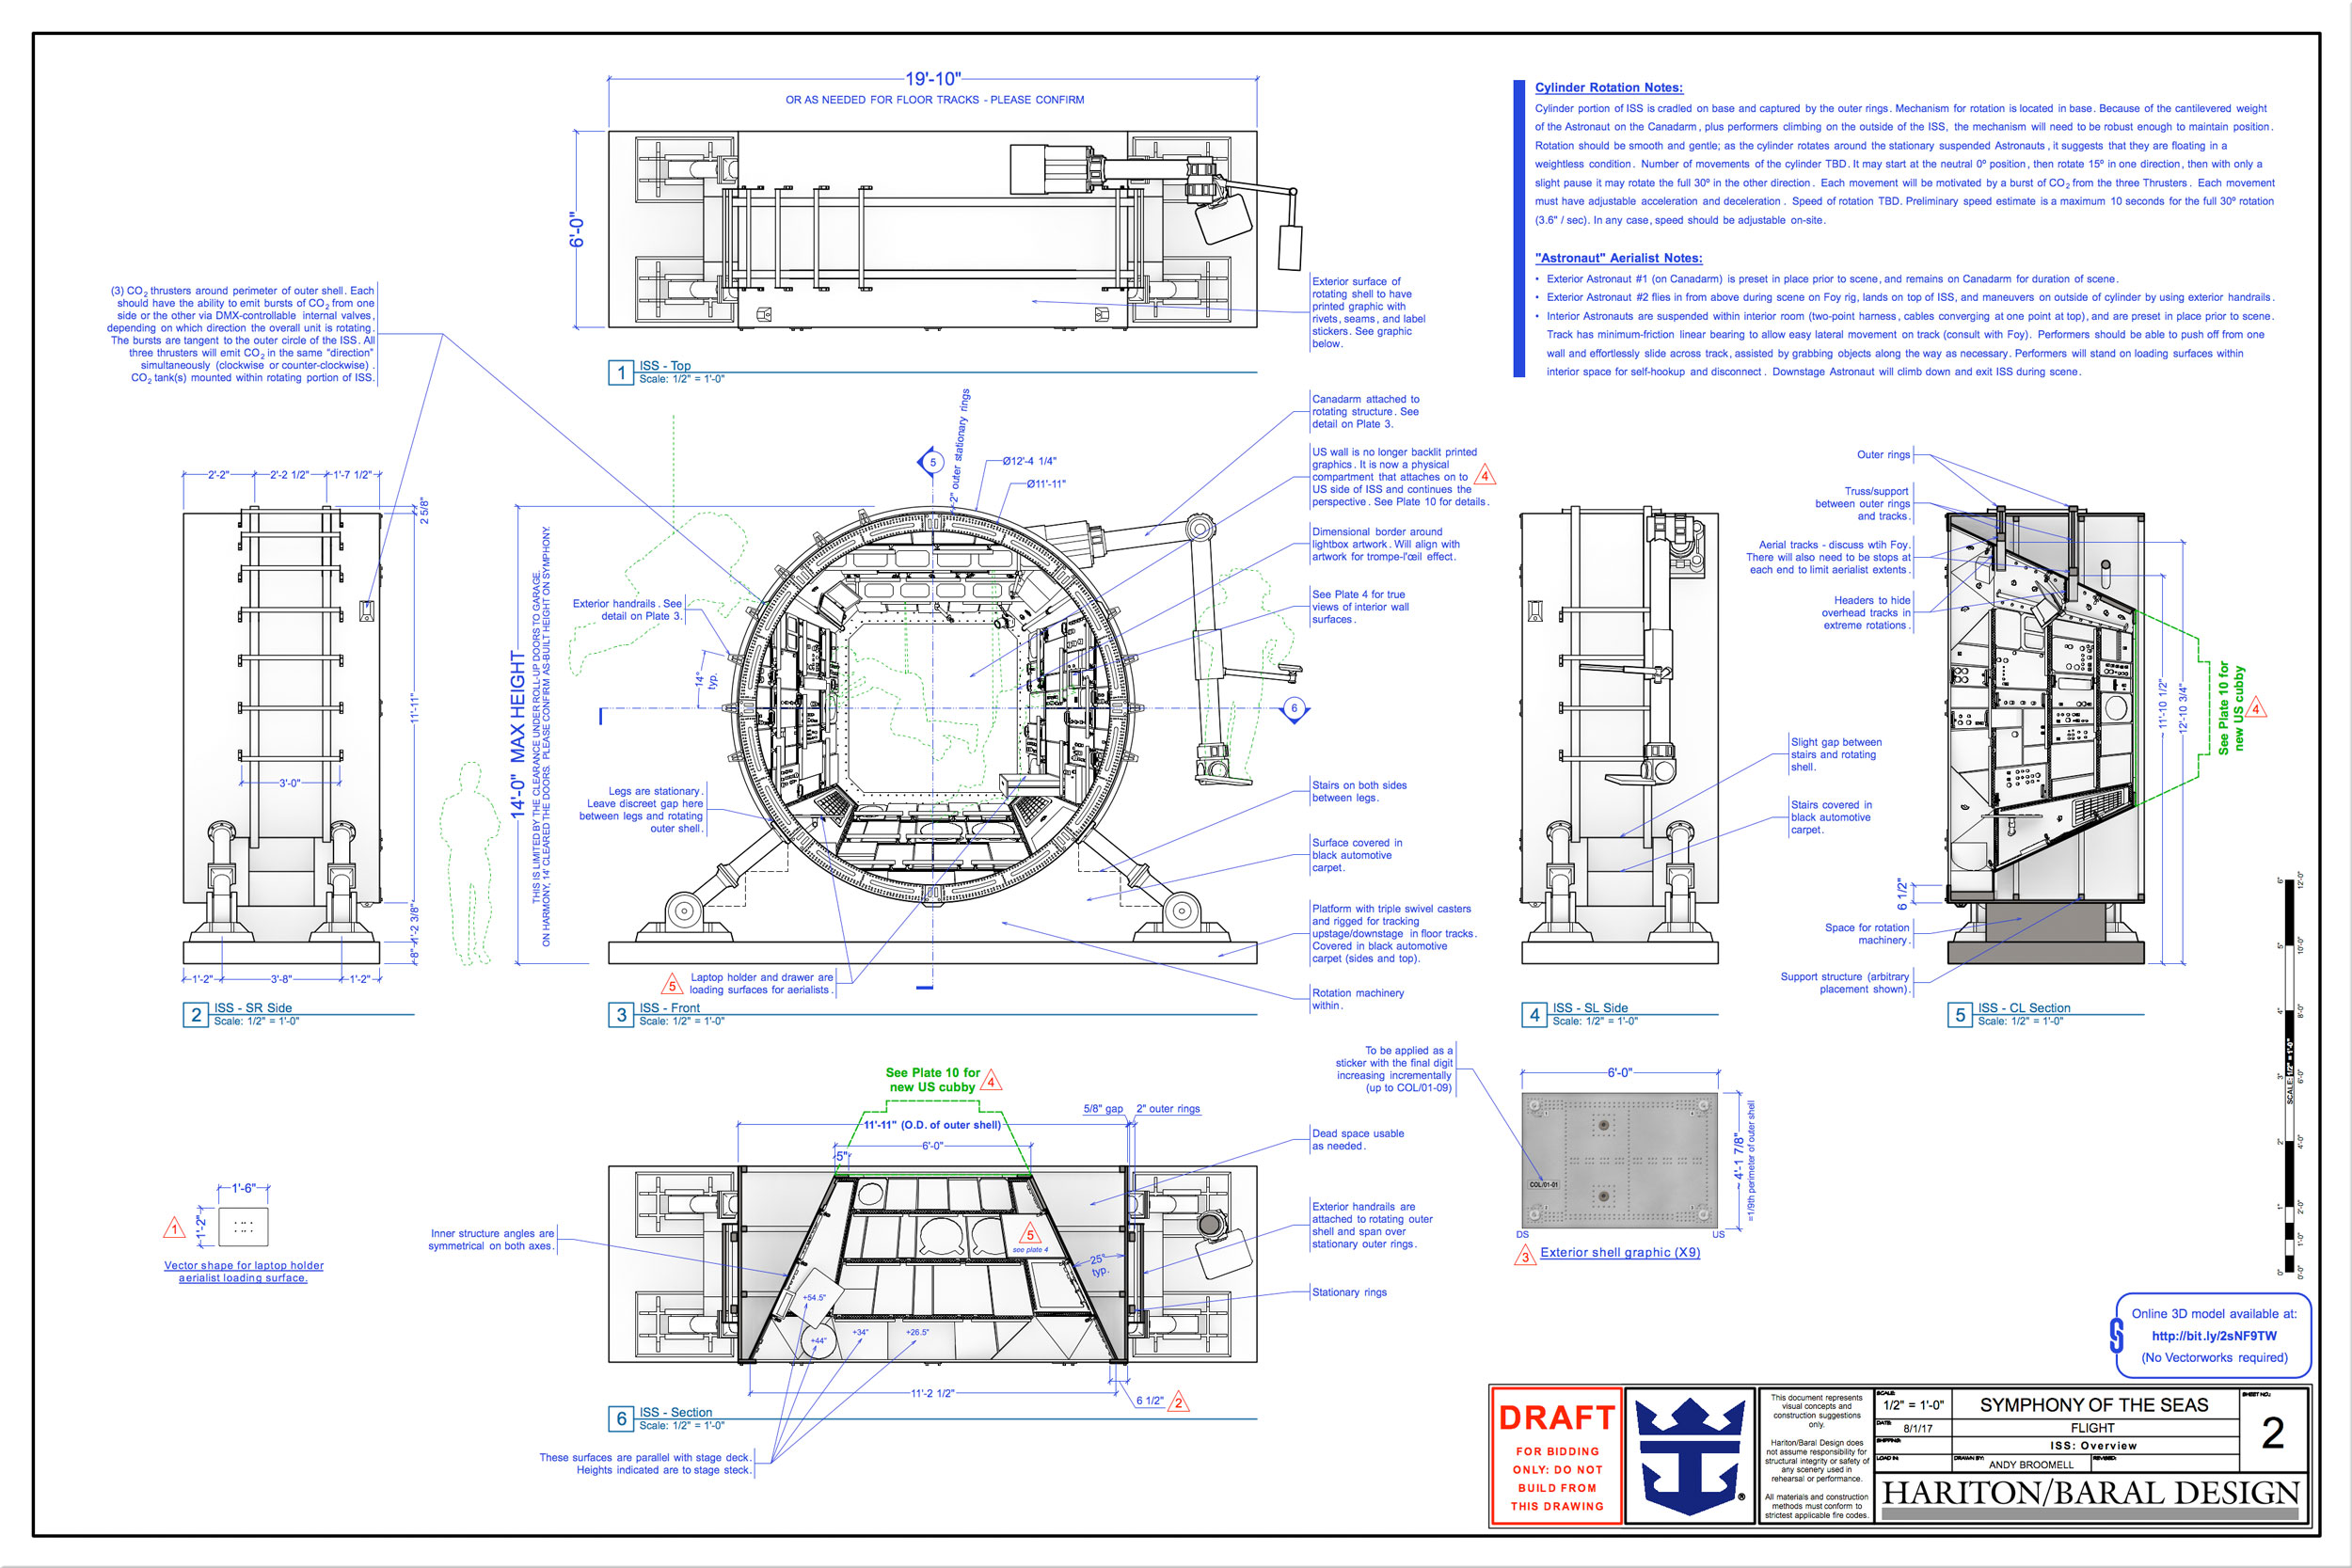 andy-broomell-vectorworks-drafting-iss-2.jpg